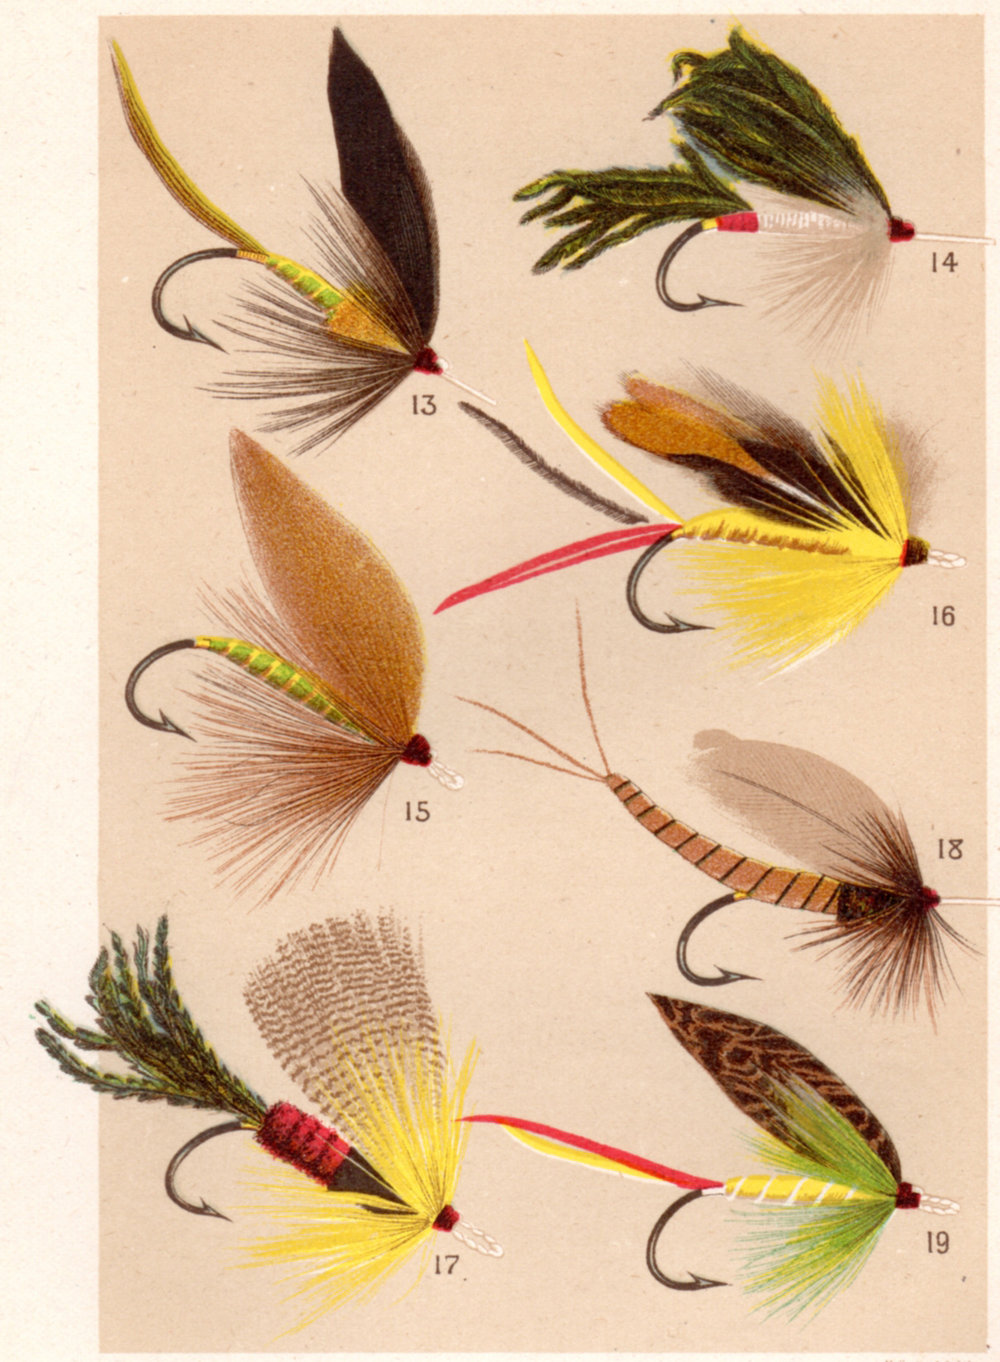 Orvis, C.F. / Fishing with the Fly (1885)